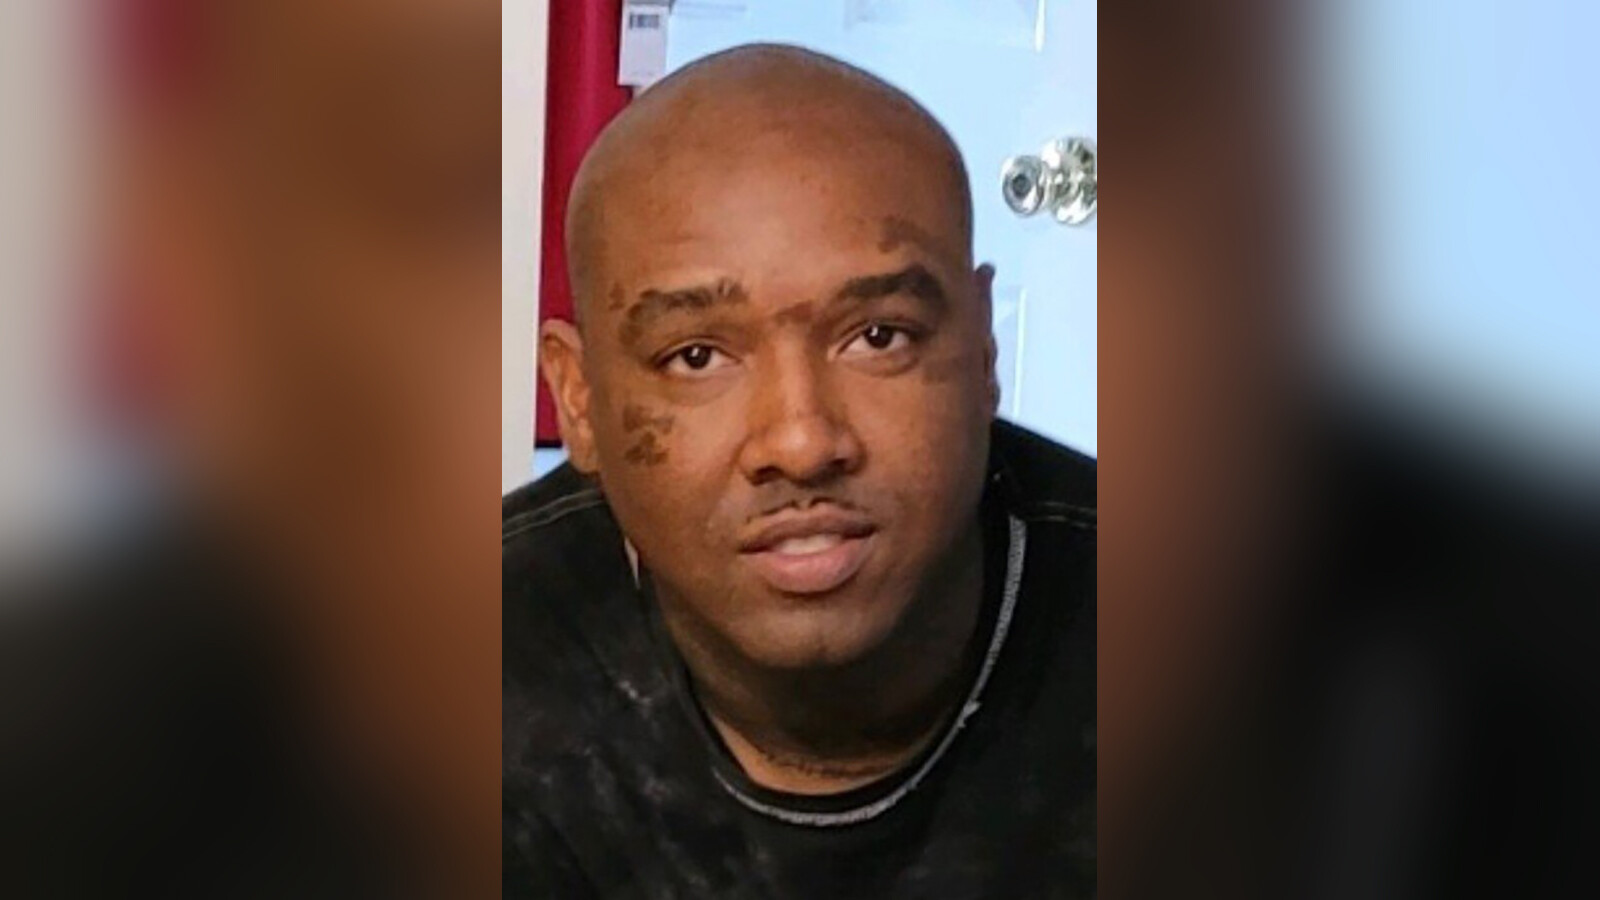 No charges will be filed against former detention officers in Jamal Sutherland's death